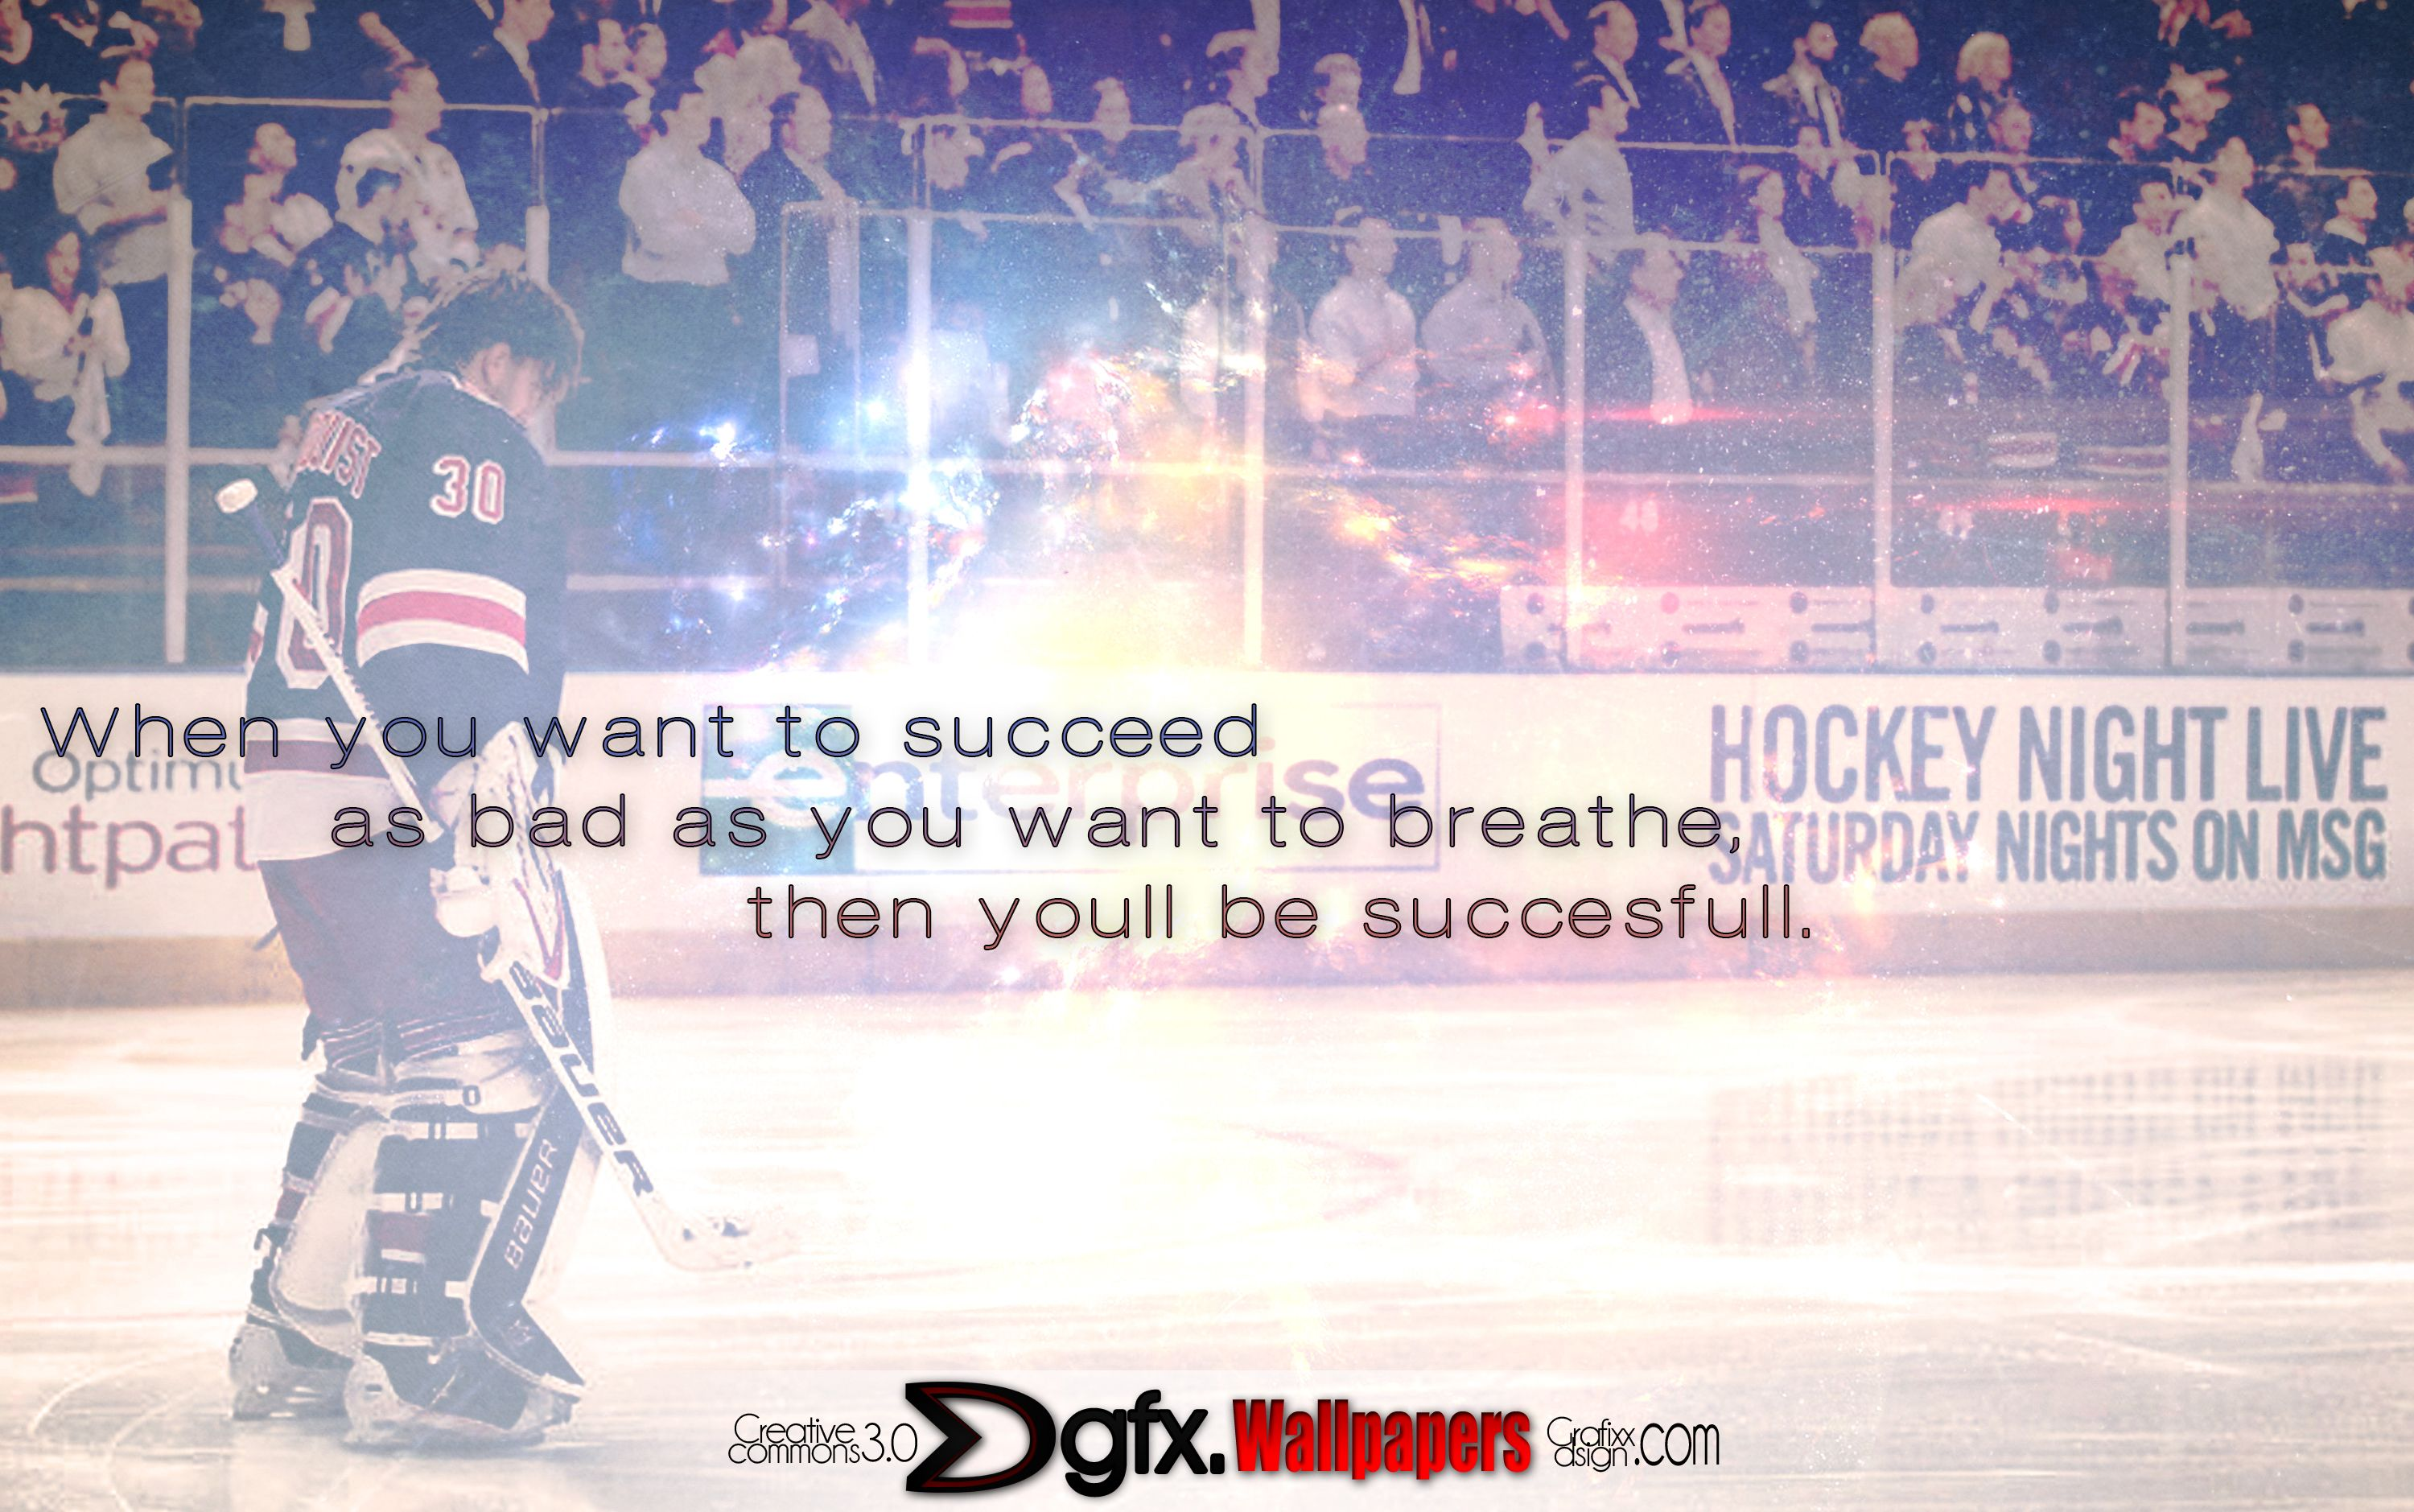 hockey, lundqvist and inspiring quote. i'd say we have a